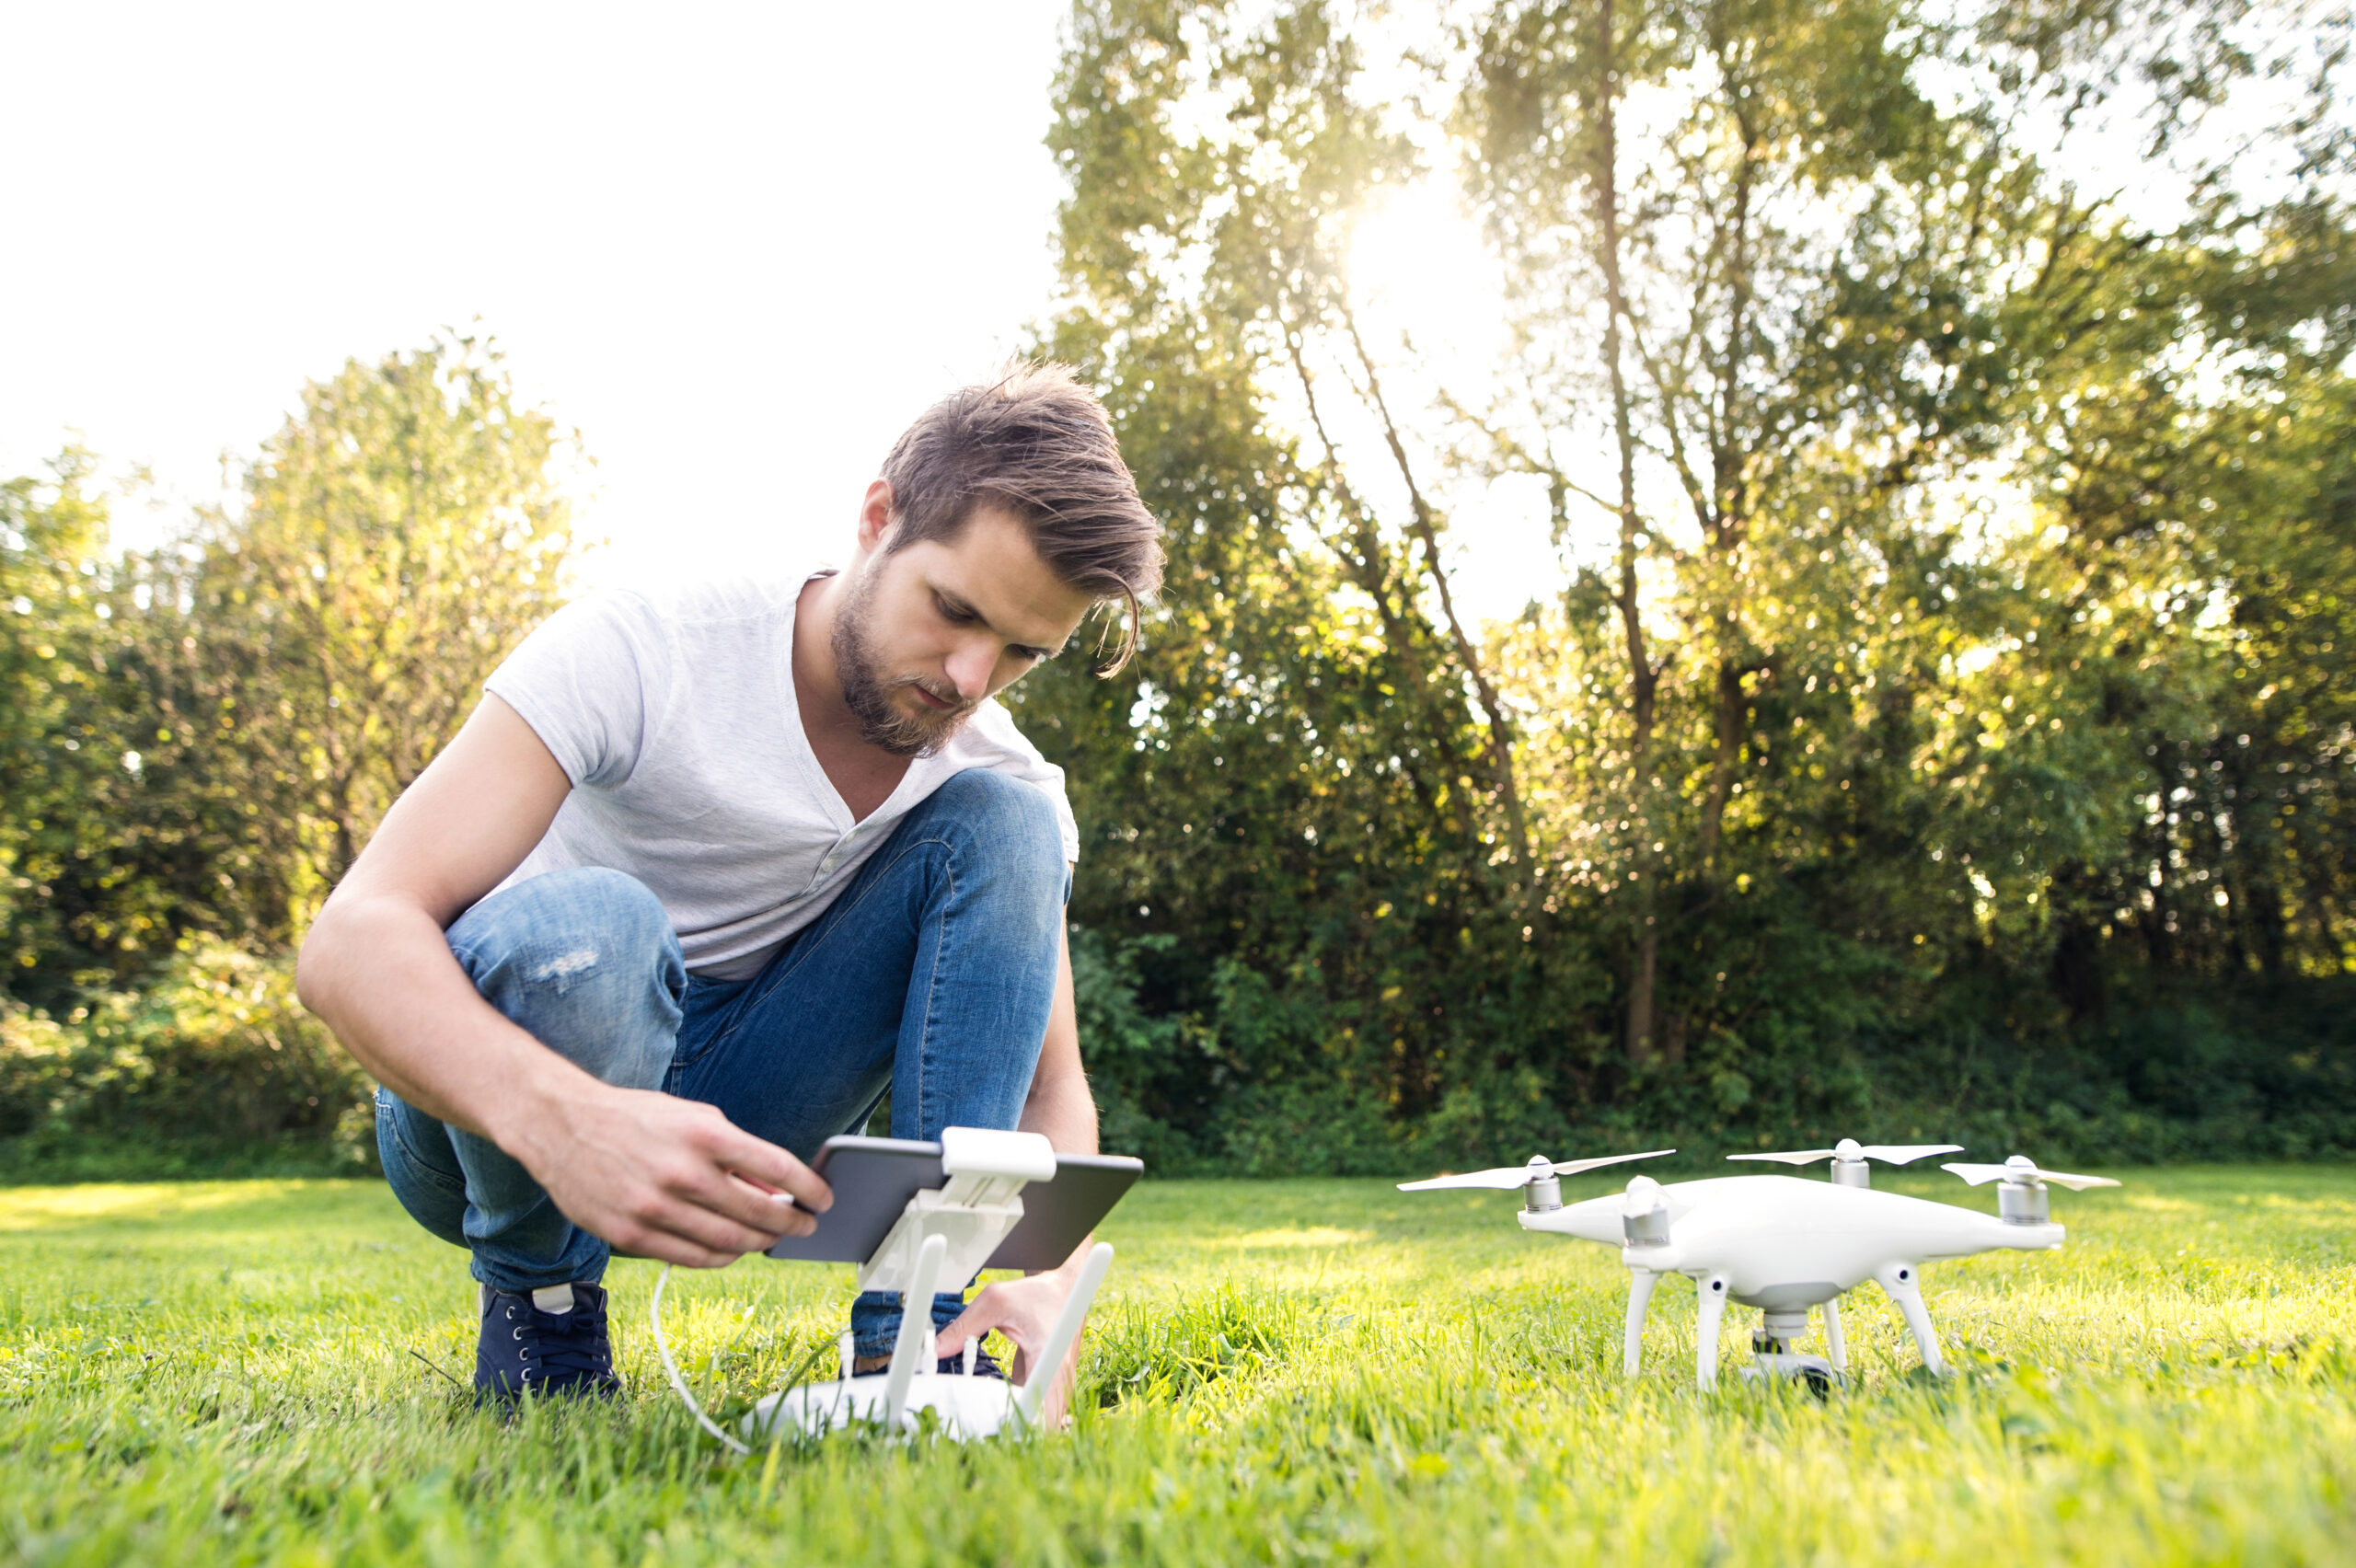 Agricultural Drone: The Ideal drone